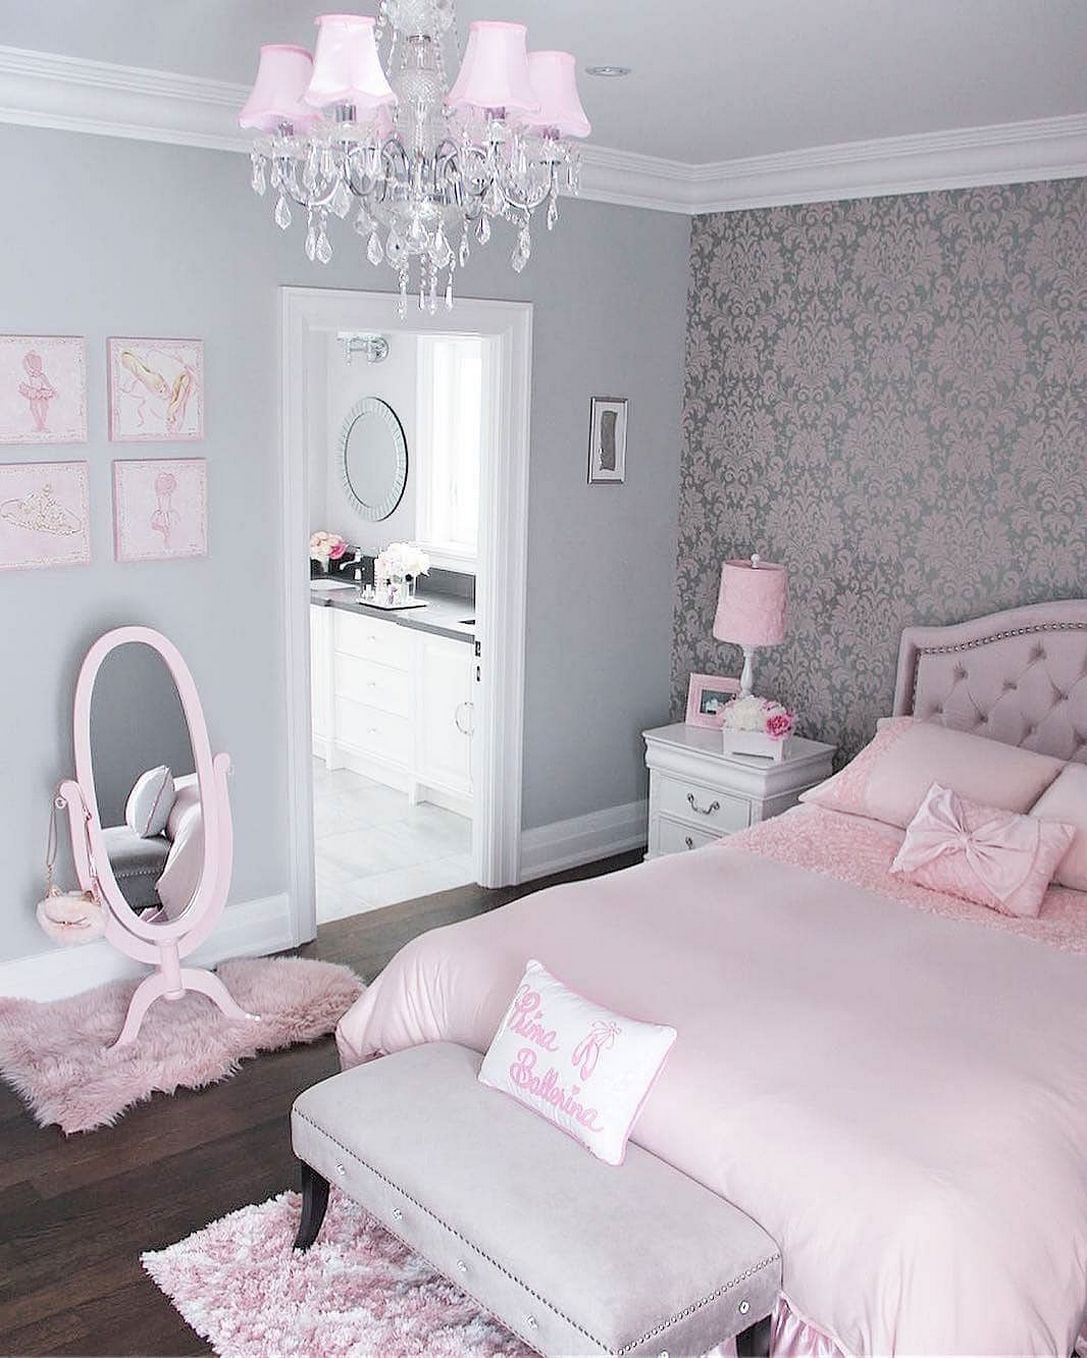 Bedroom Ideas Cream Furniture Shabby Chic Bedroom Yellow Bedroom Bench Blue Bedroom Wallpaper Ideas Grey: 90+ How To Completely Change Your Room To Vintage Princess